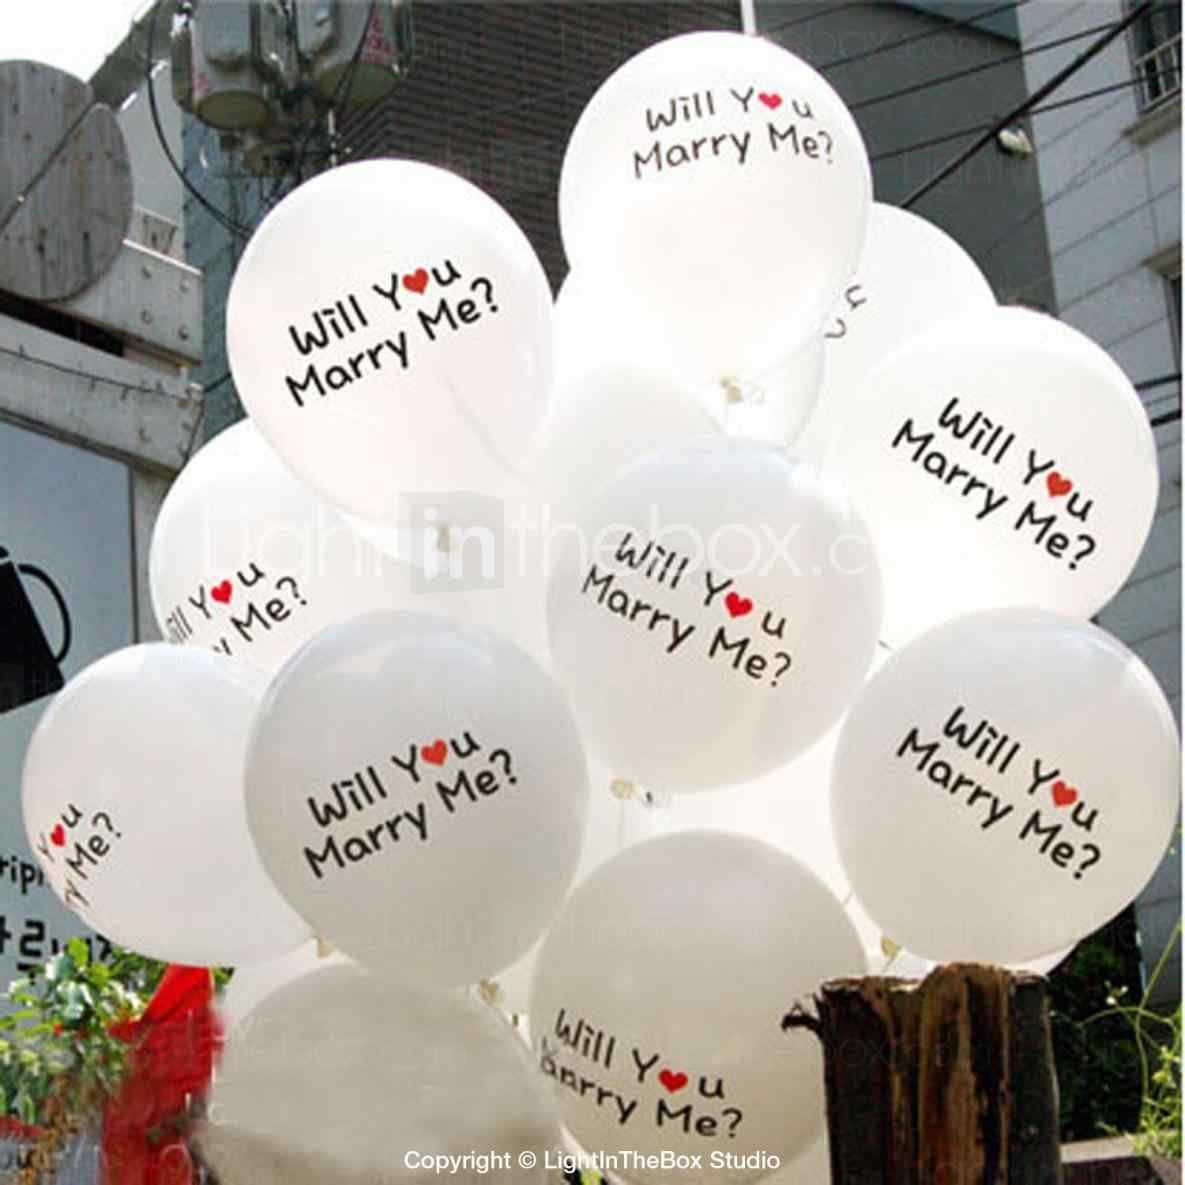 10 Most Recommended Will You Marry Me Ideas will you marry me proposal ideas siudy